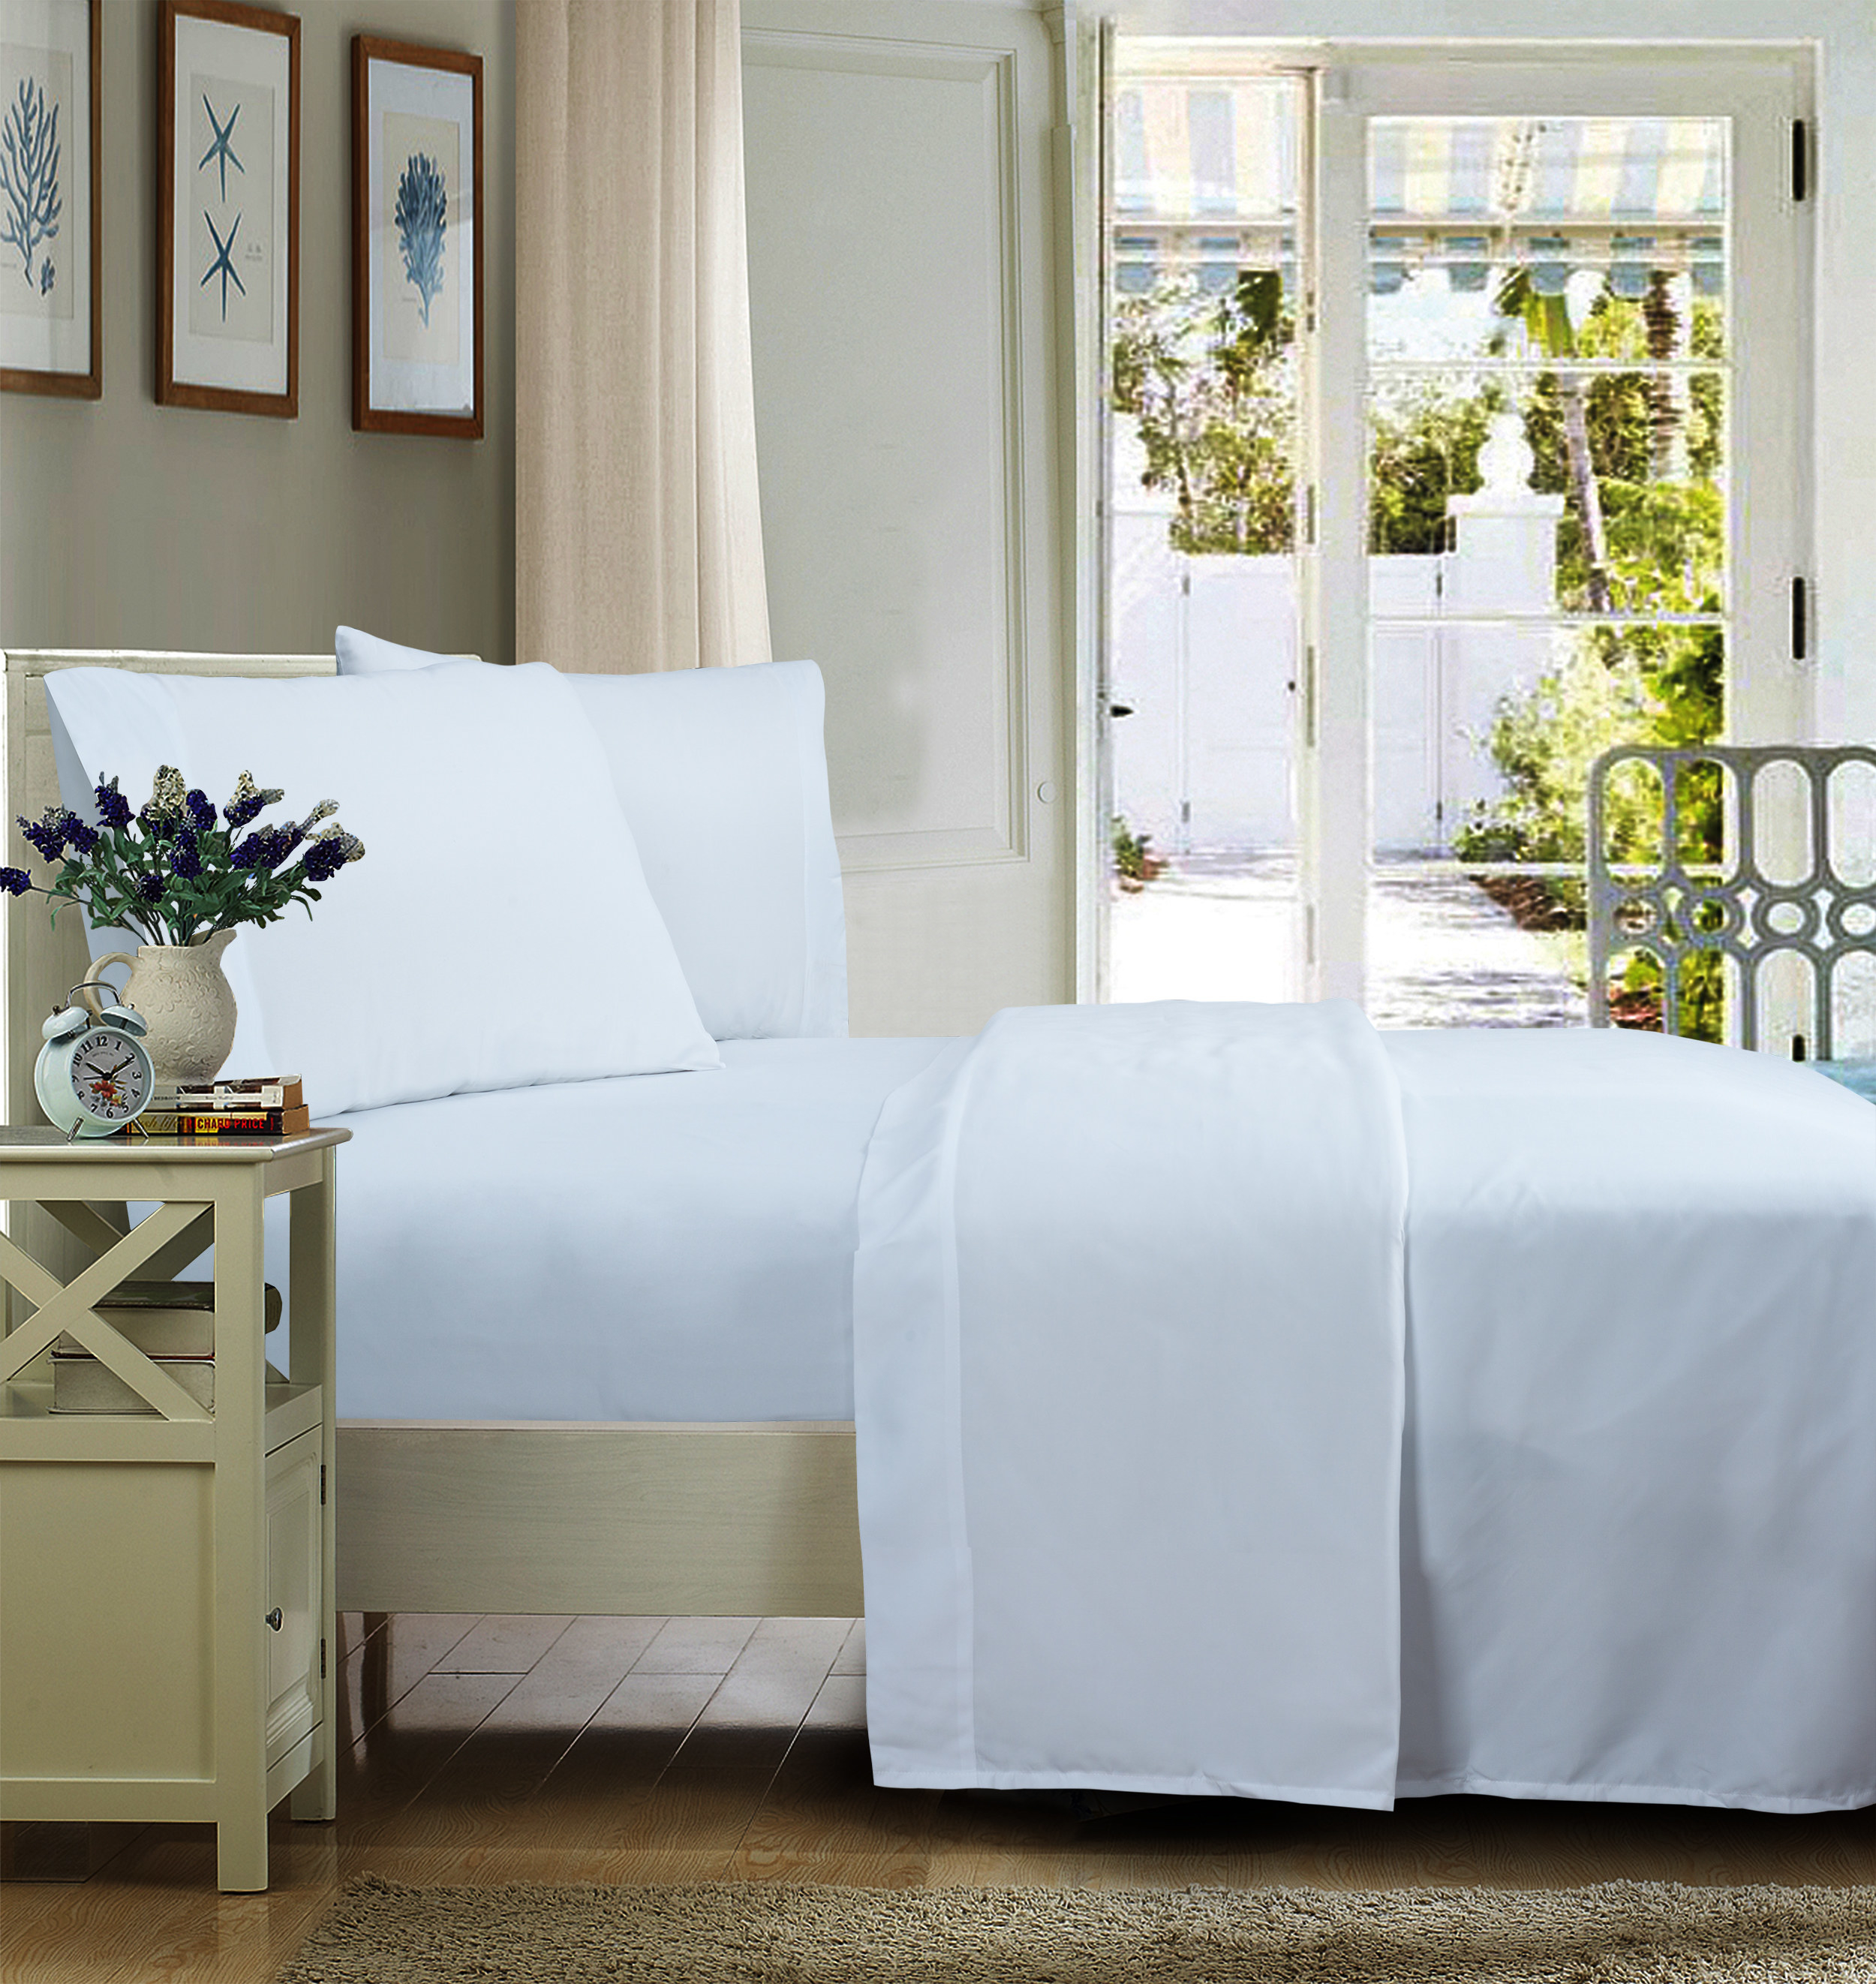 The sheets on a clean, white bed